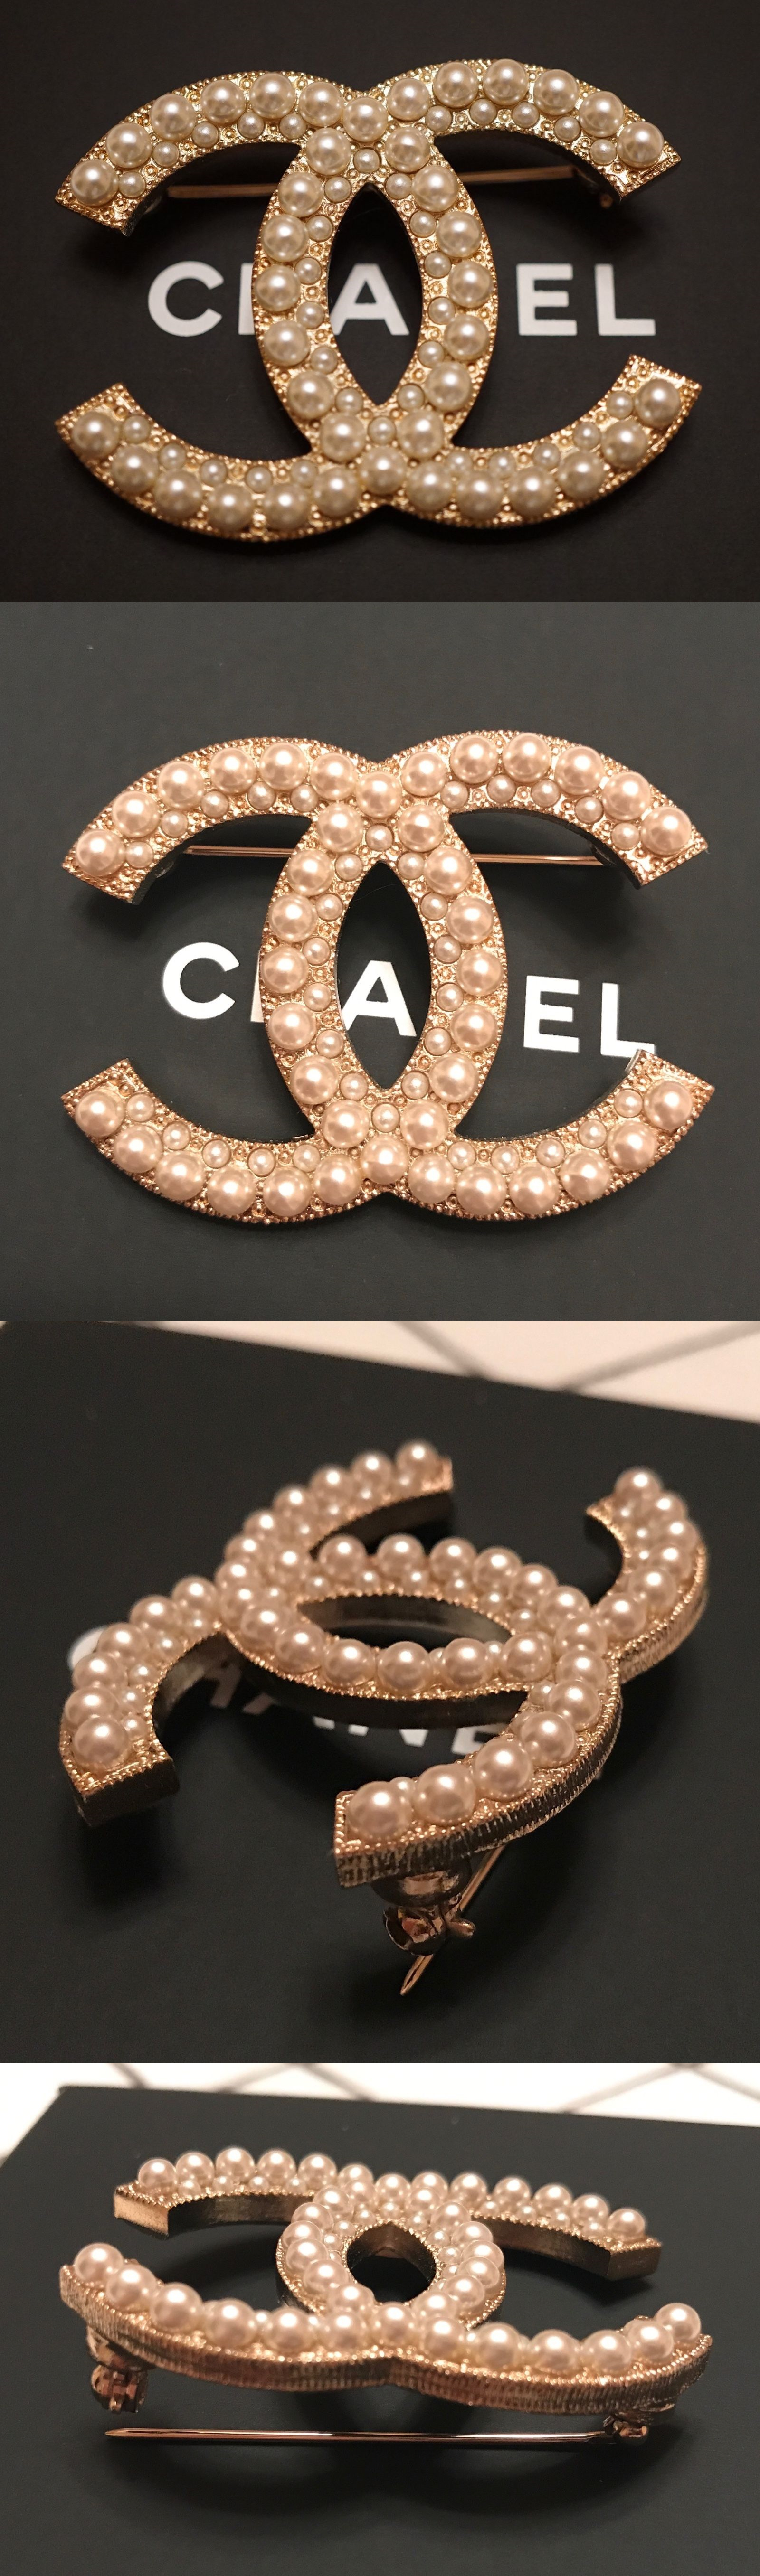 Pins And Brooches 50677: Bnib Authentic Chanel Large White Pearls Gold  Metal Cc Logo Brooch